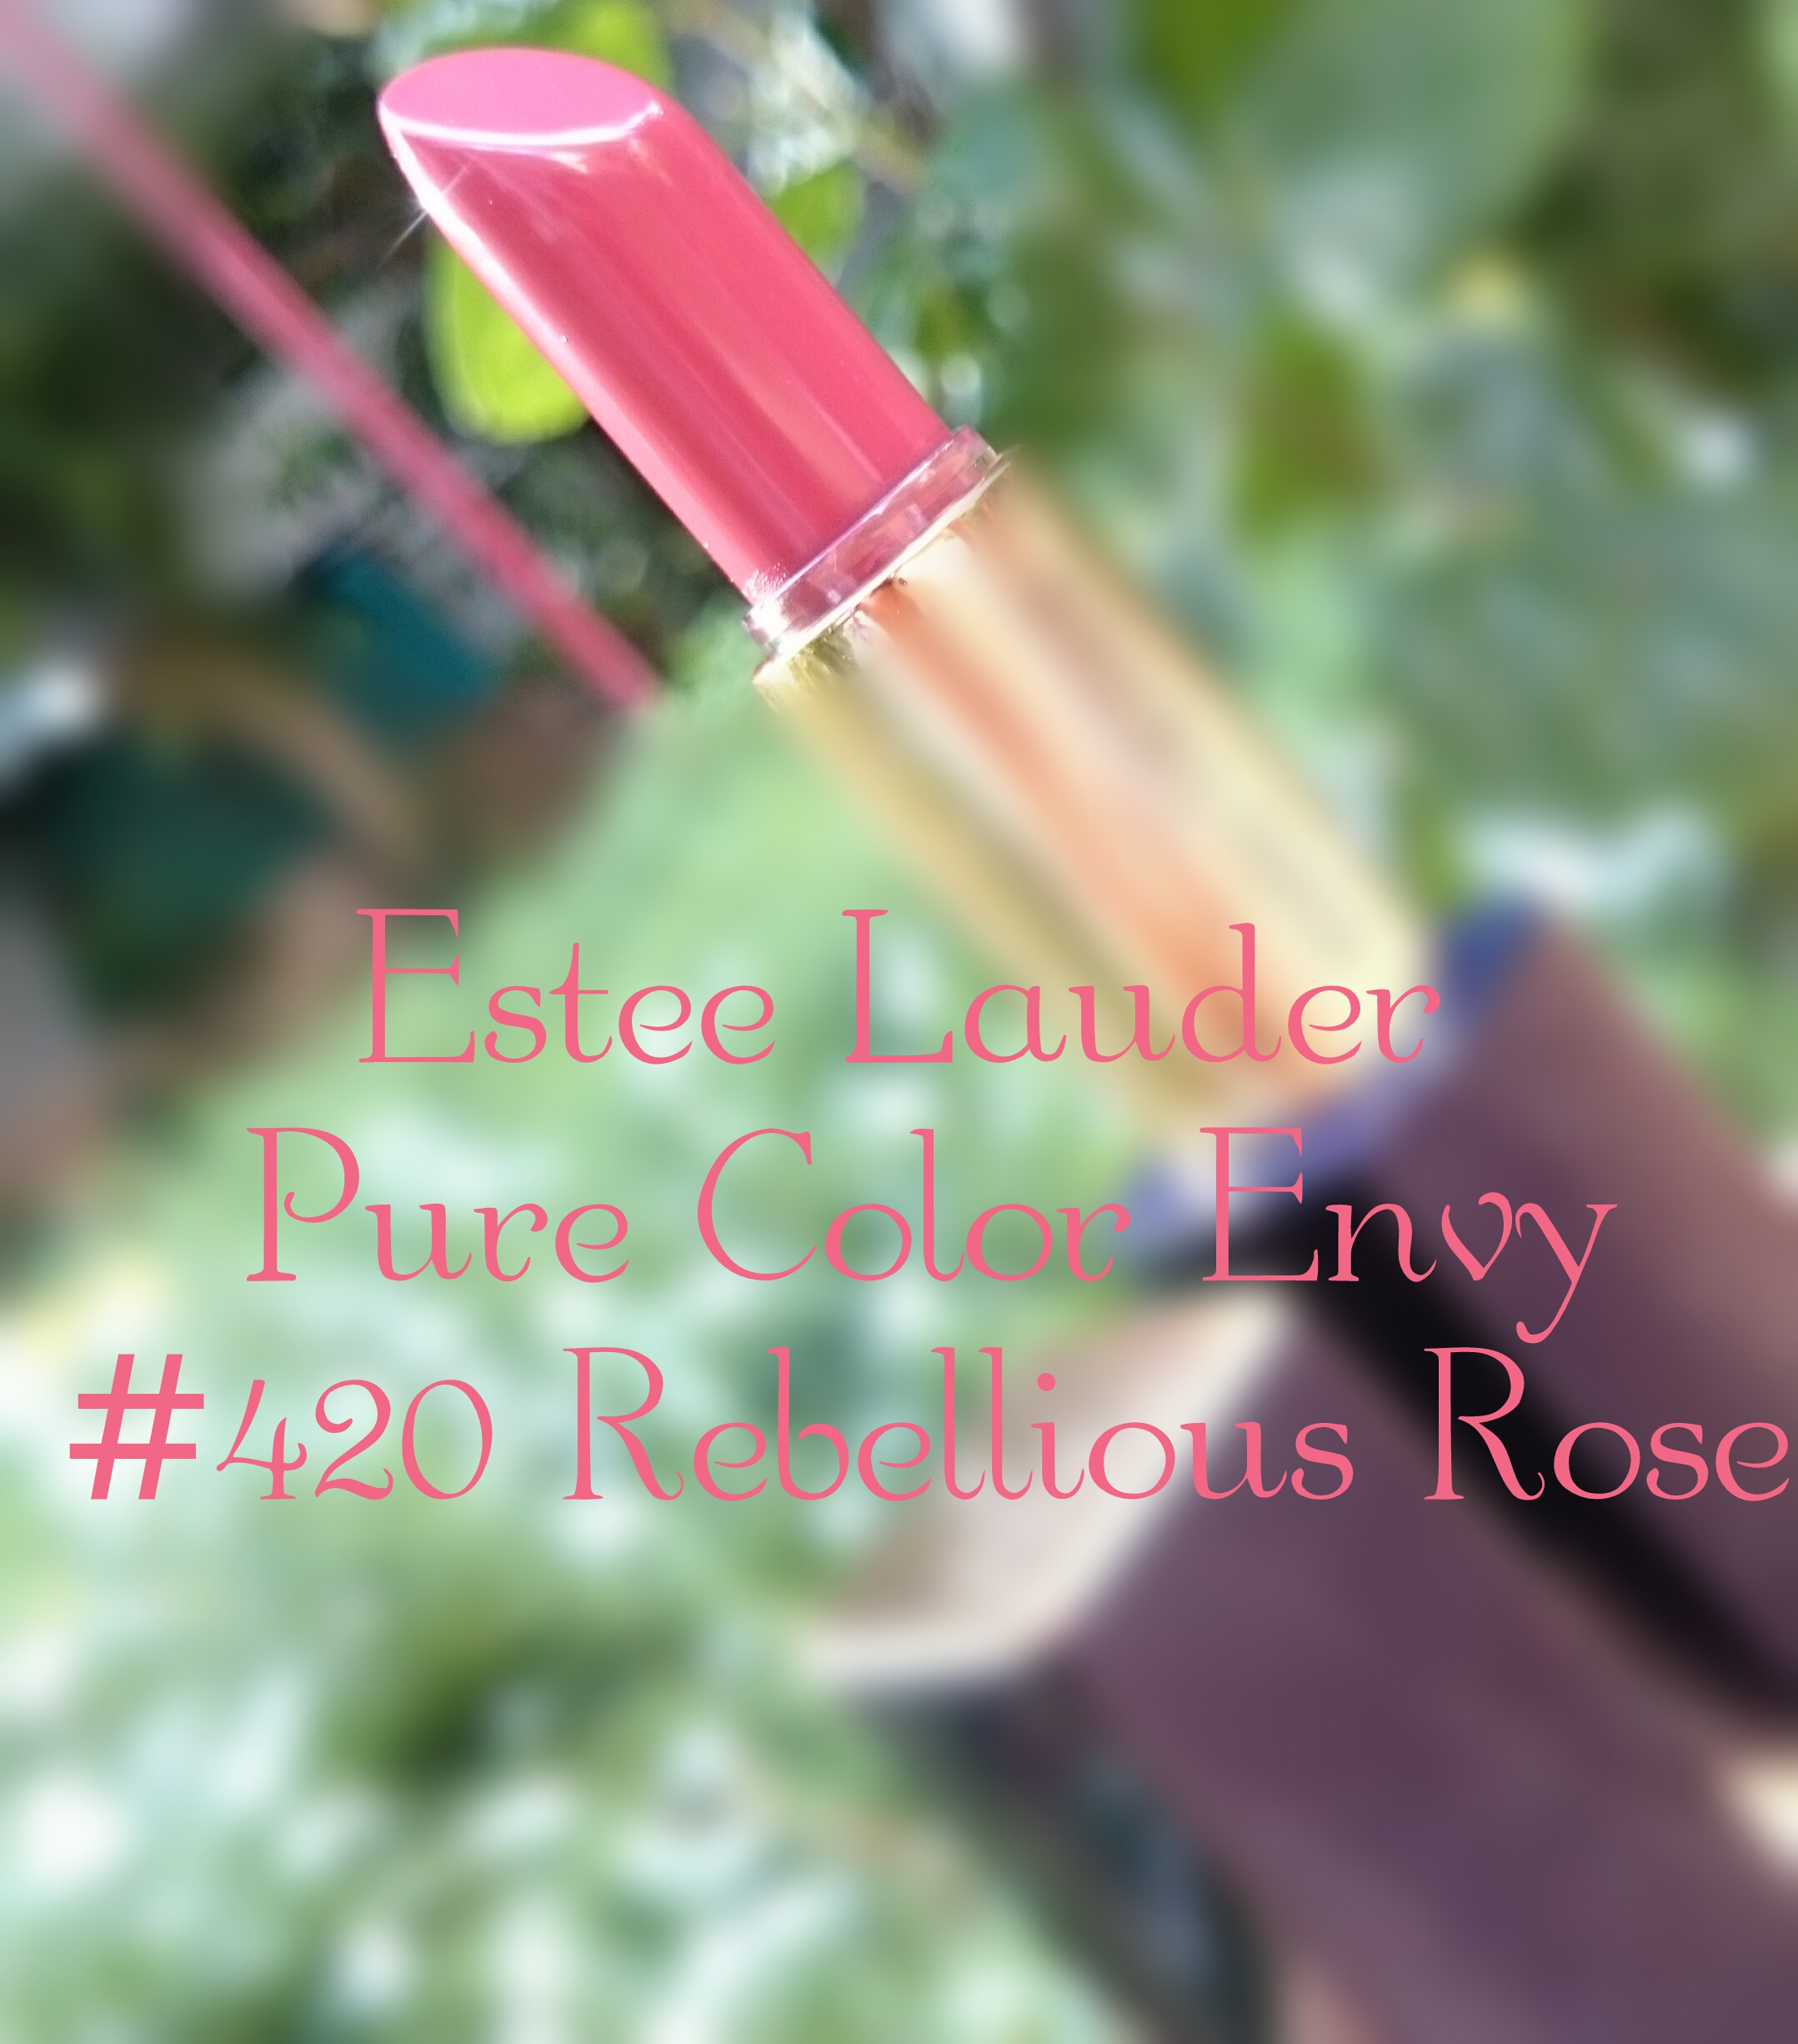 Estee Lauder Pure Color Envy lipstick in Rebellious Rose